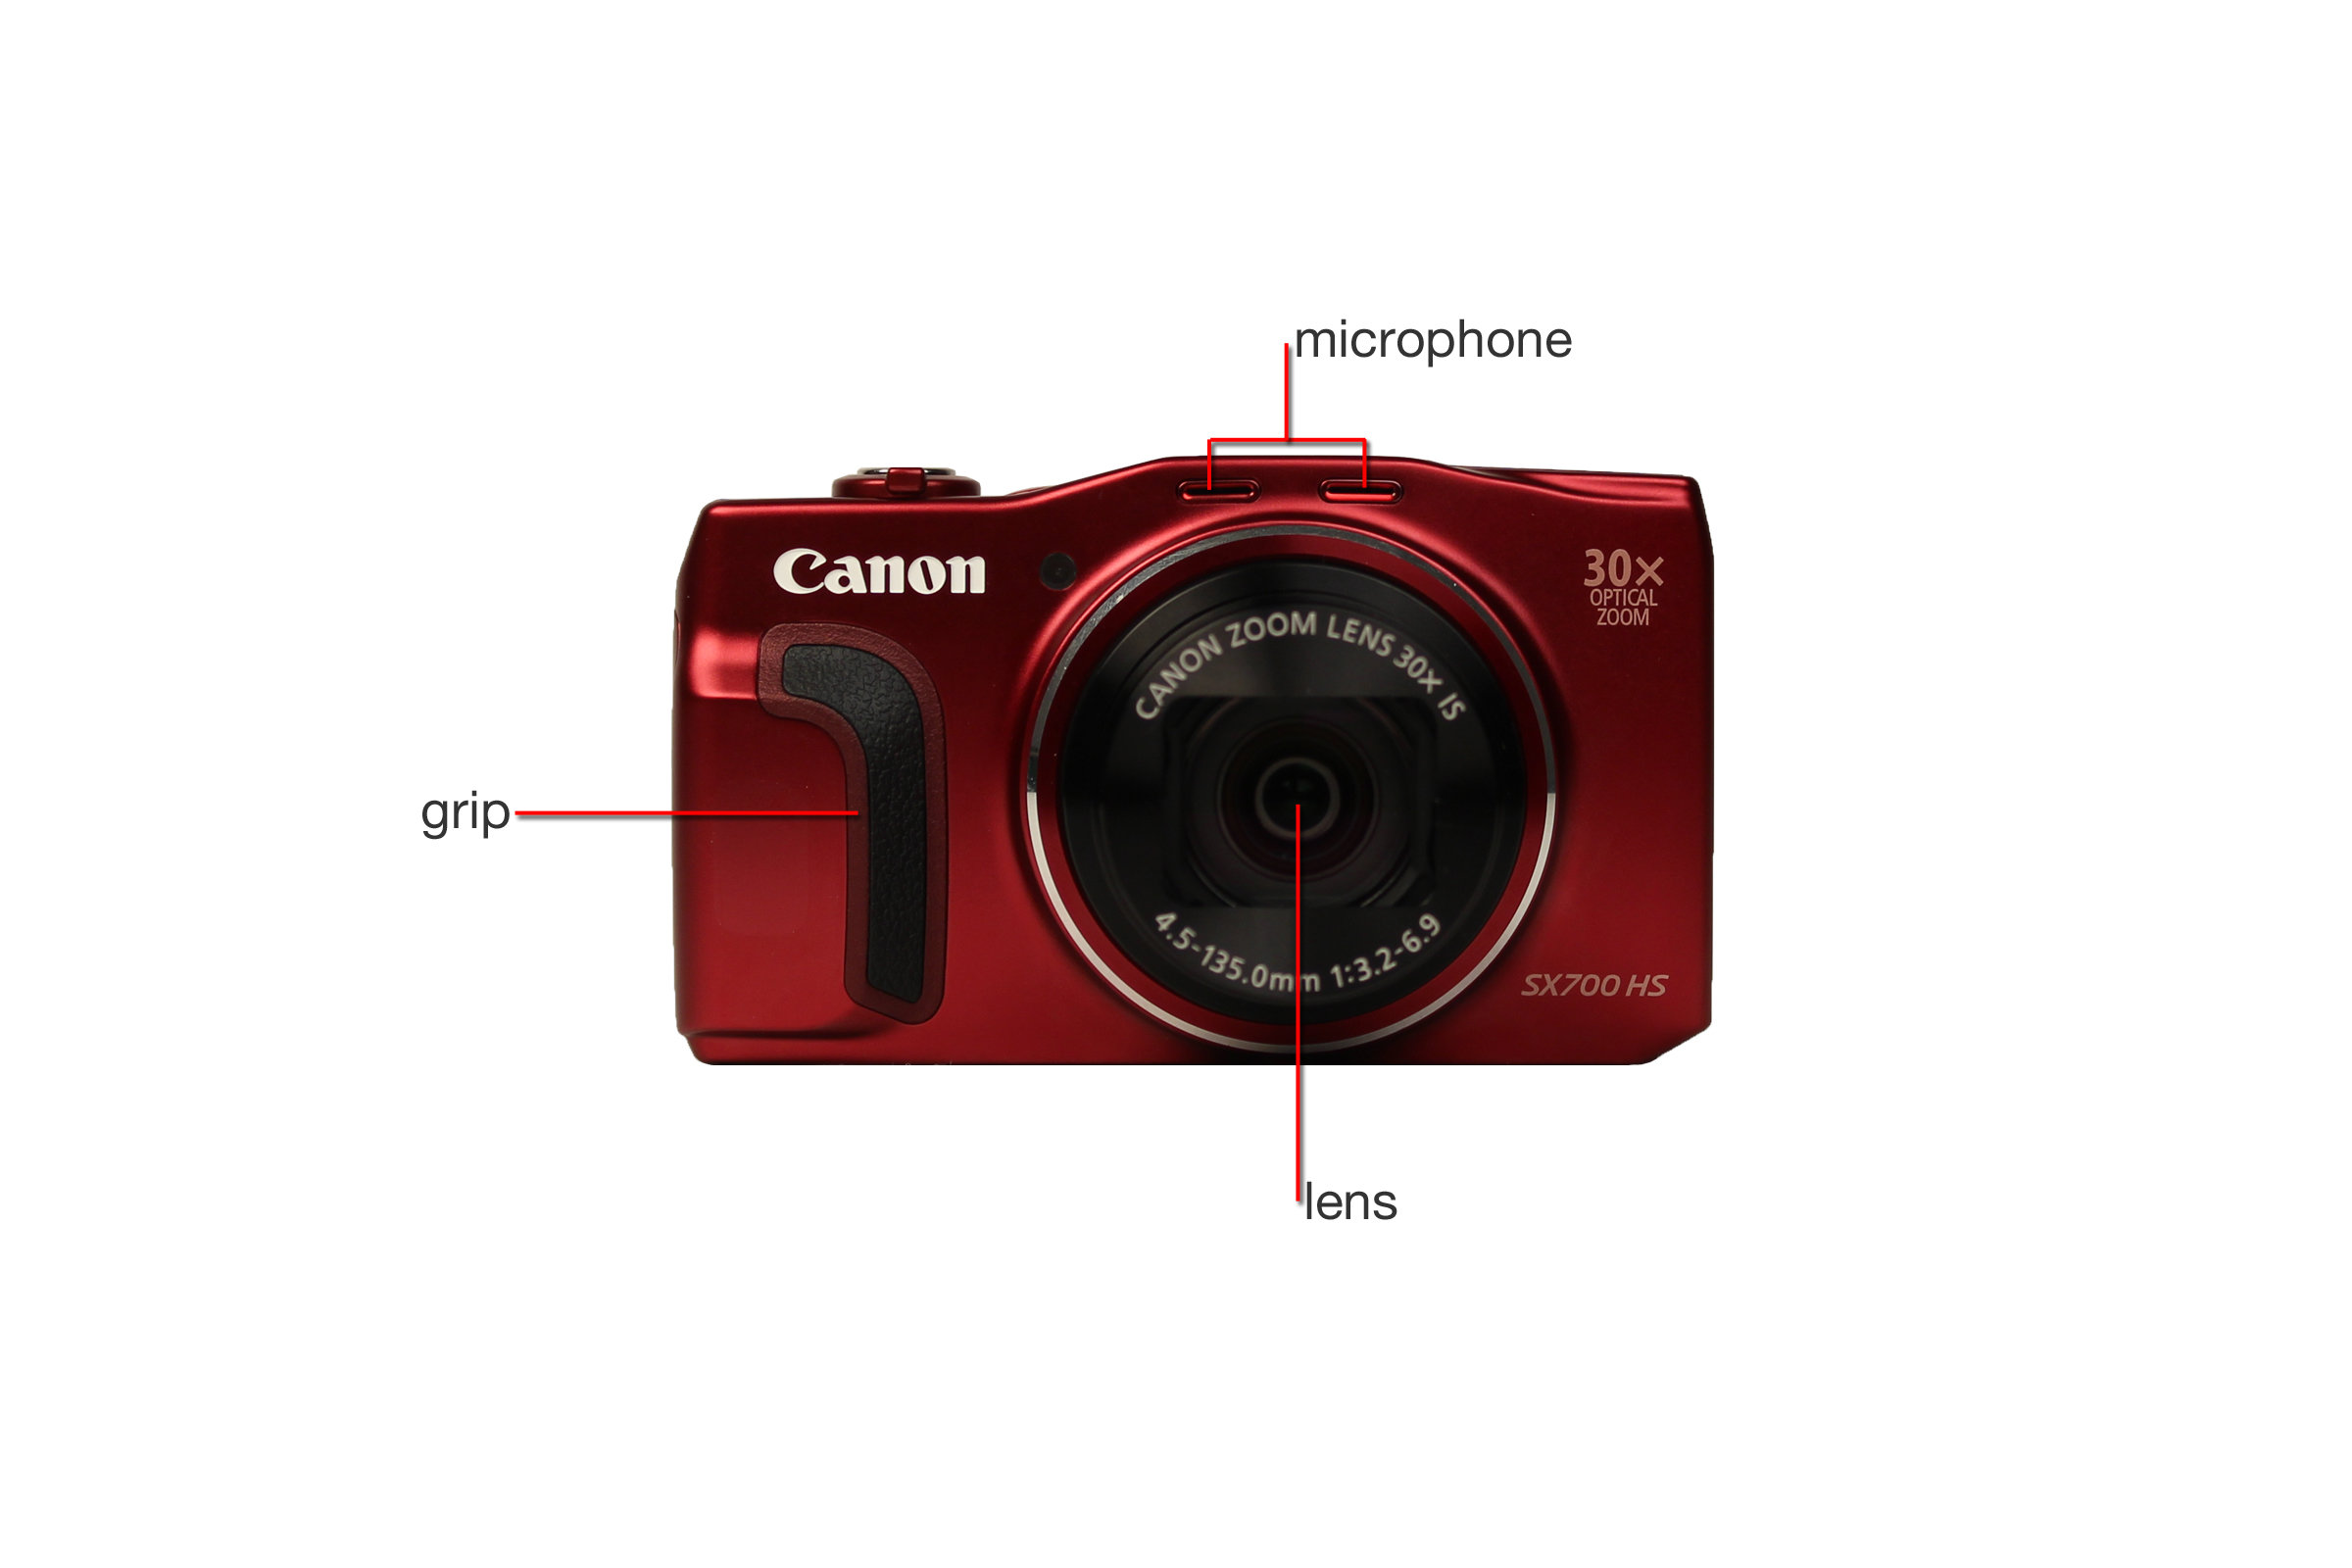 A closer look at the Canon SX700 HS.